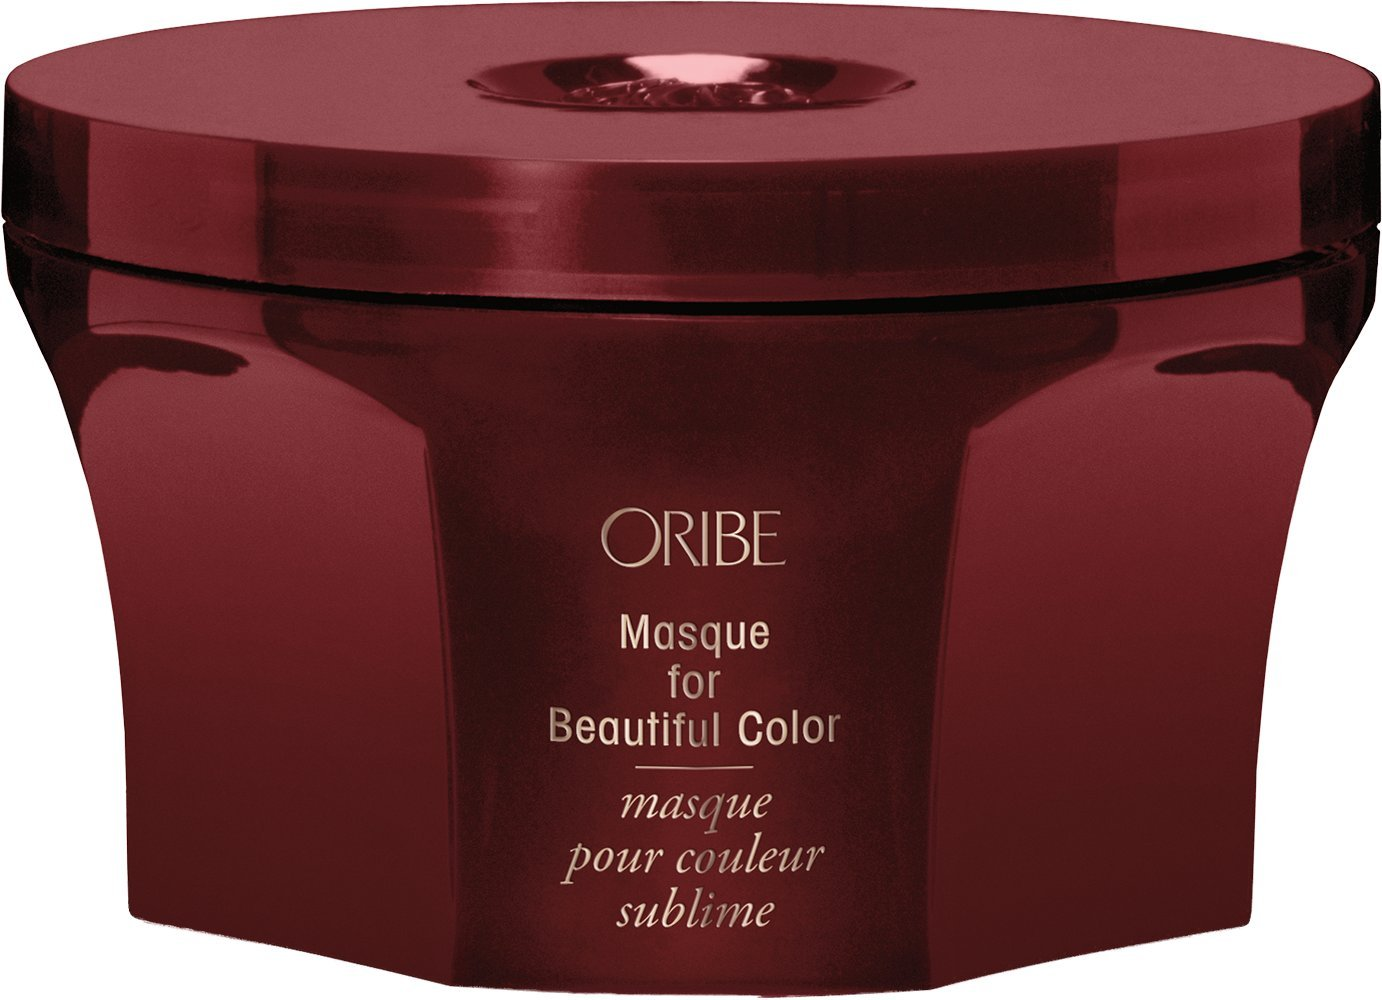 ORIBE Masque for Beautiful Color 5.9 Fl Oz by ORIBE (Image #1)